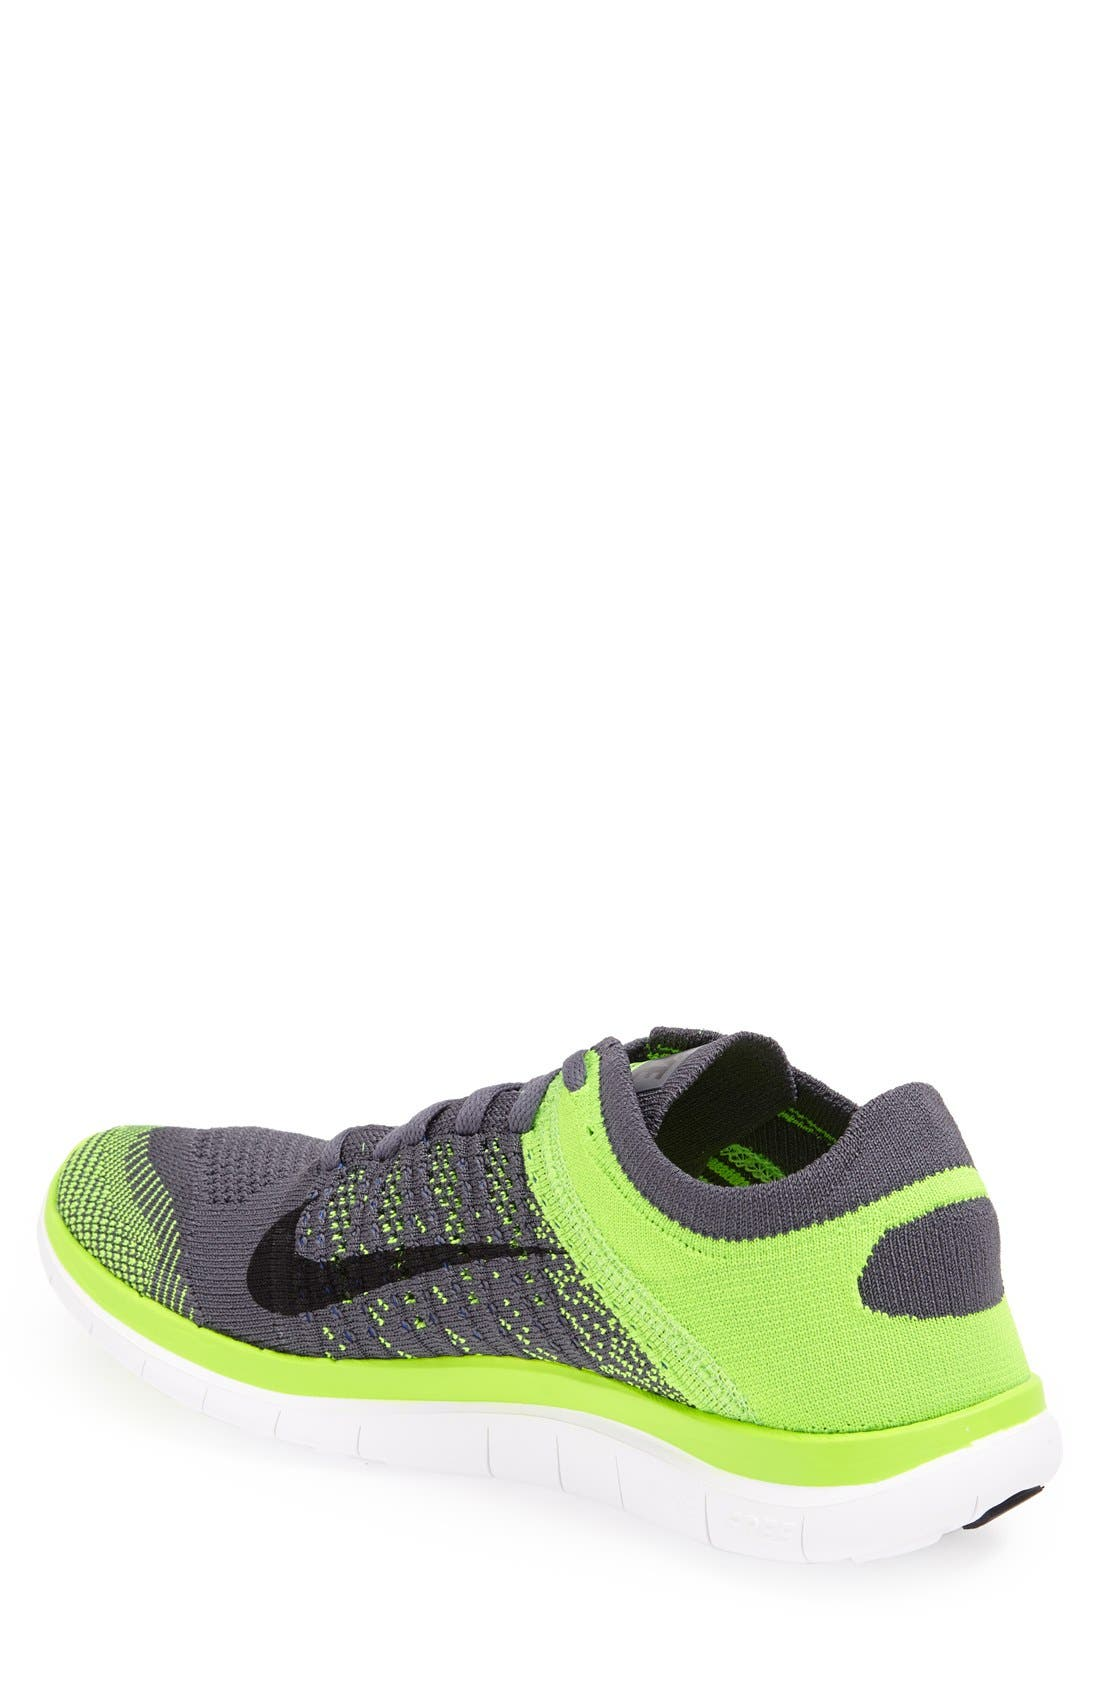 Alternate Image 2  - Nike 'Free 4.0 Flyknit' Running Shoe (Men)